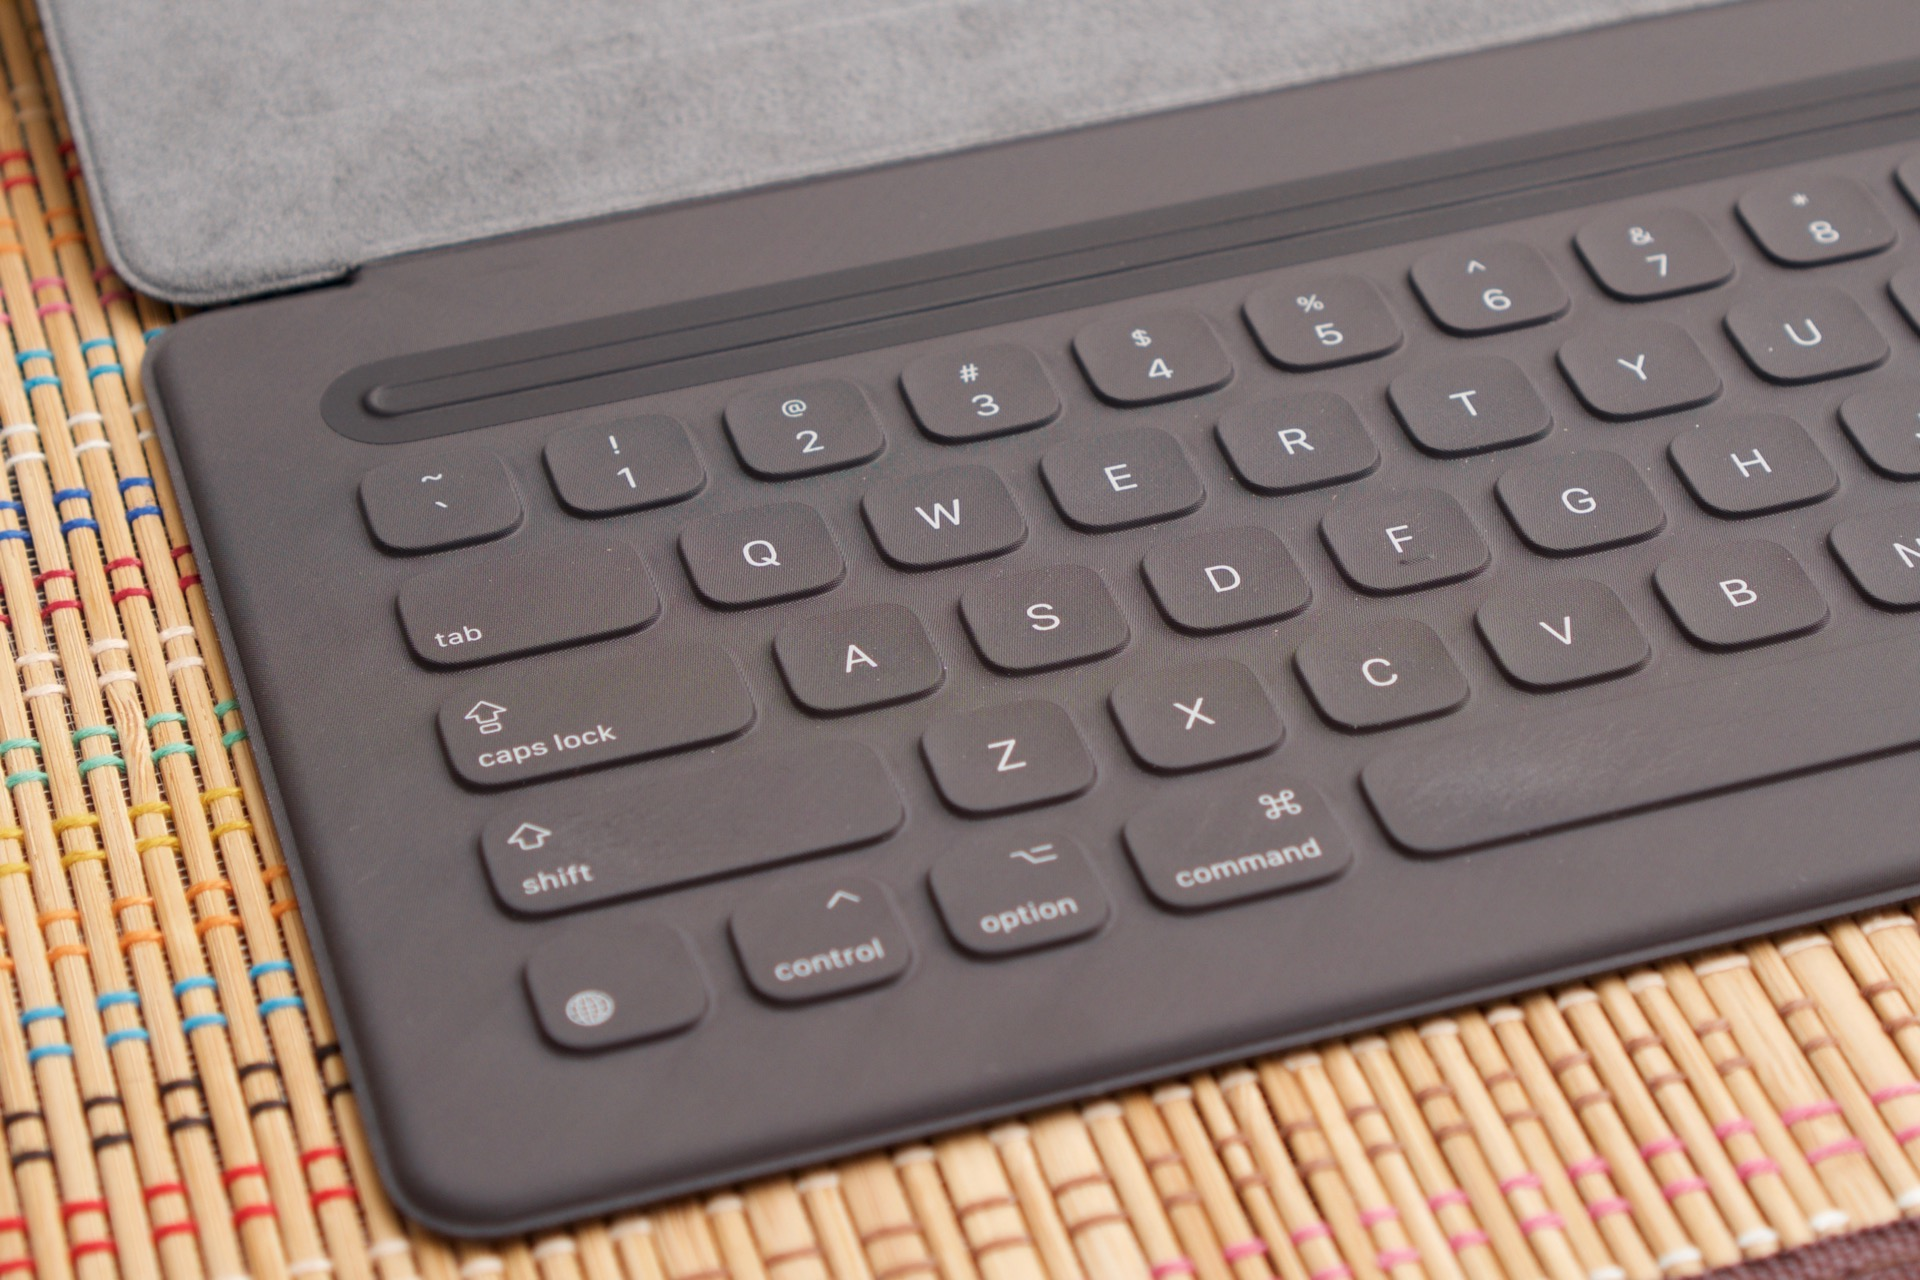 Apple will fix busted iPad Pro Smart Keyboards for up to